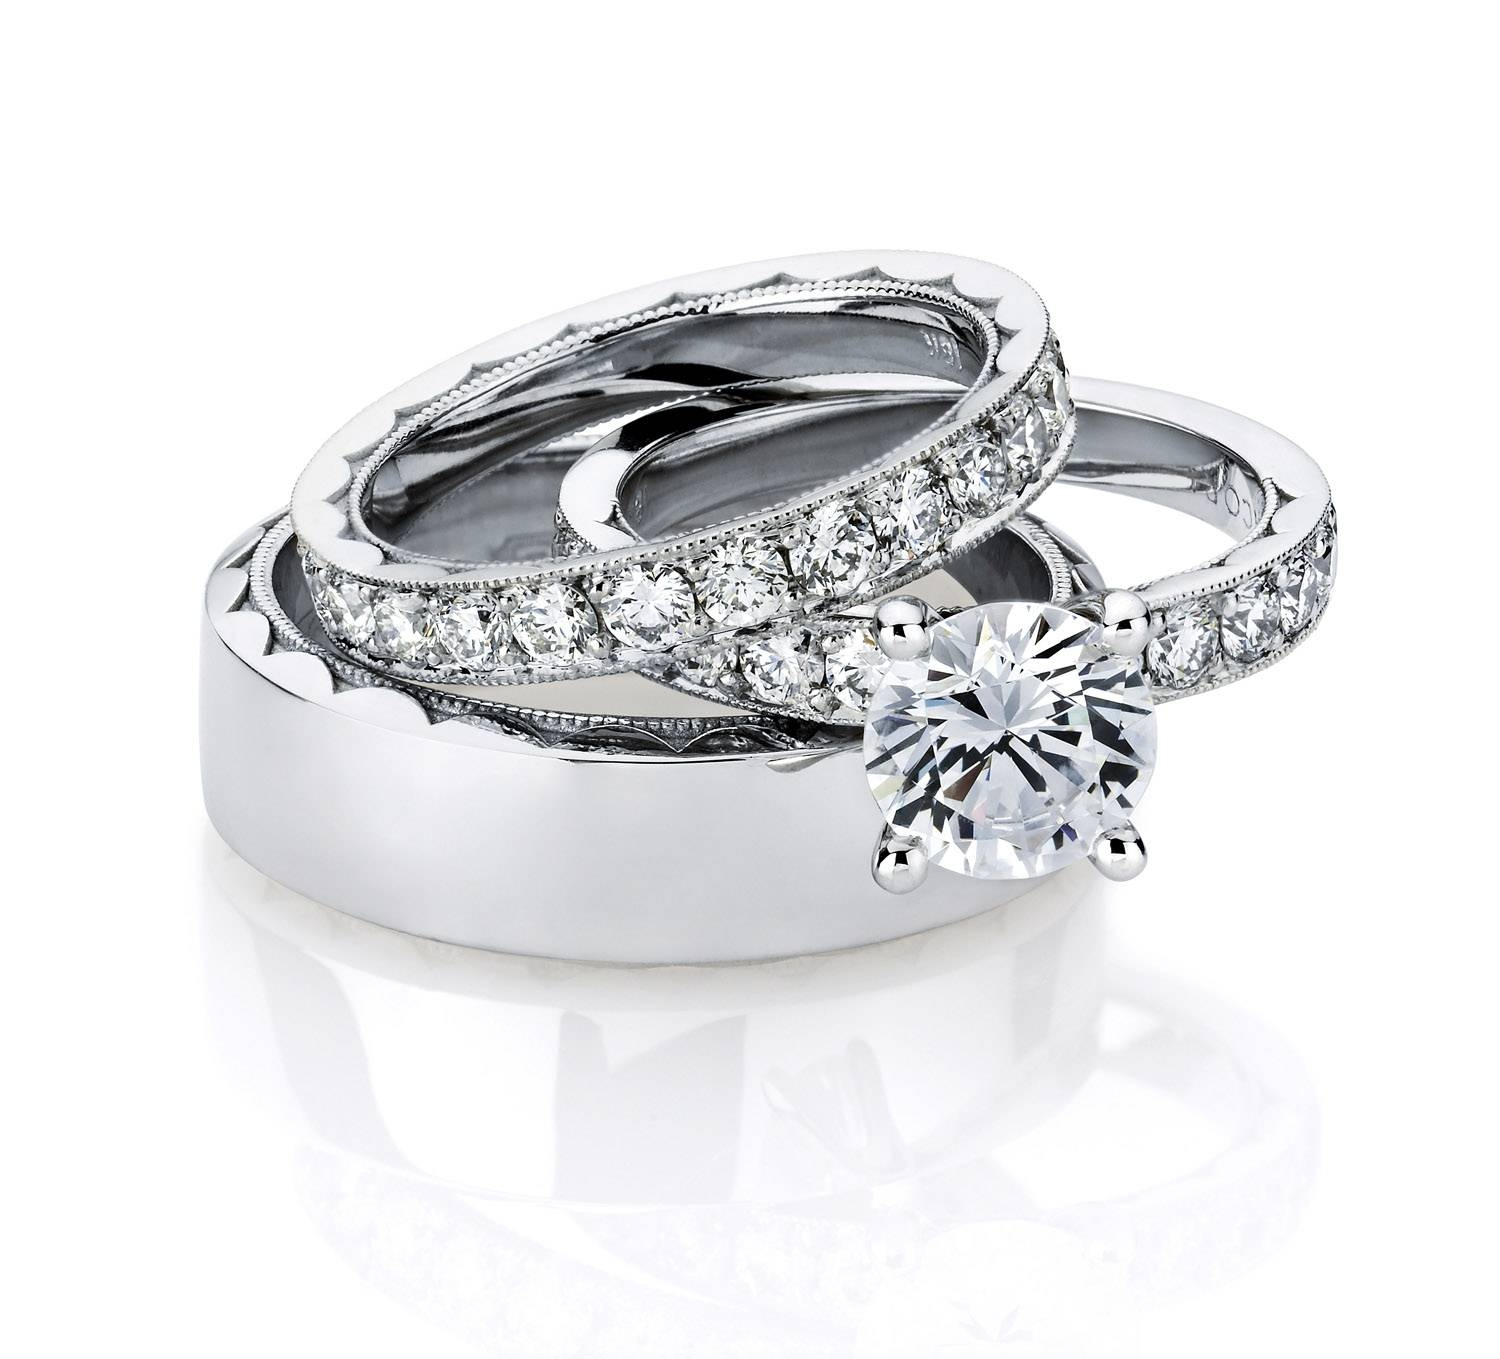 Wedding Rings Sets For Him And Her | Wedding, Promise, Diamond Inside Wedding Bands Sets For Him And Her (View 2 of 15)